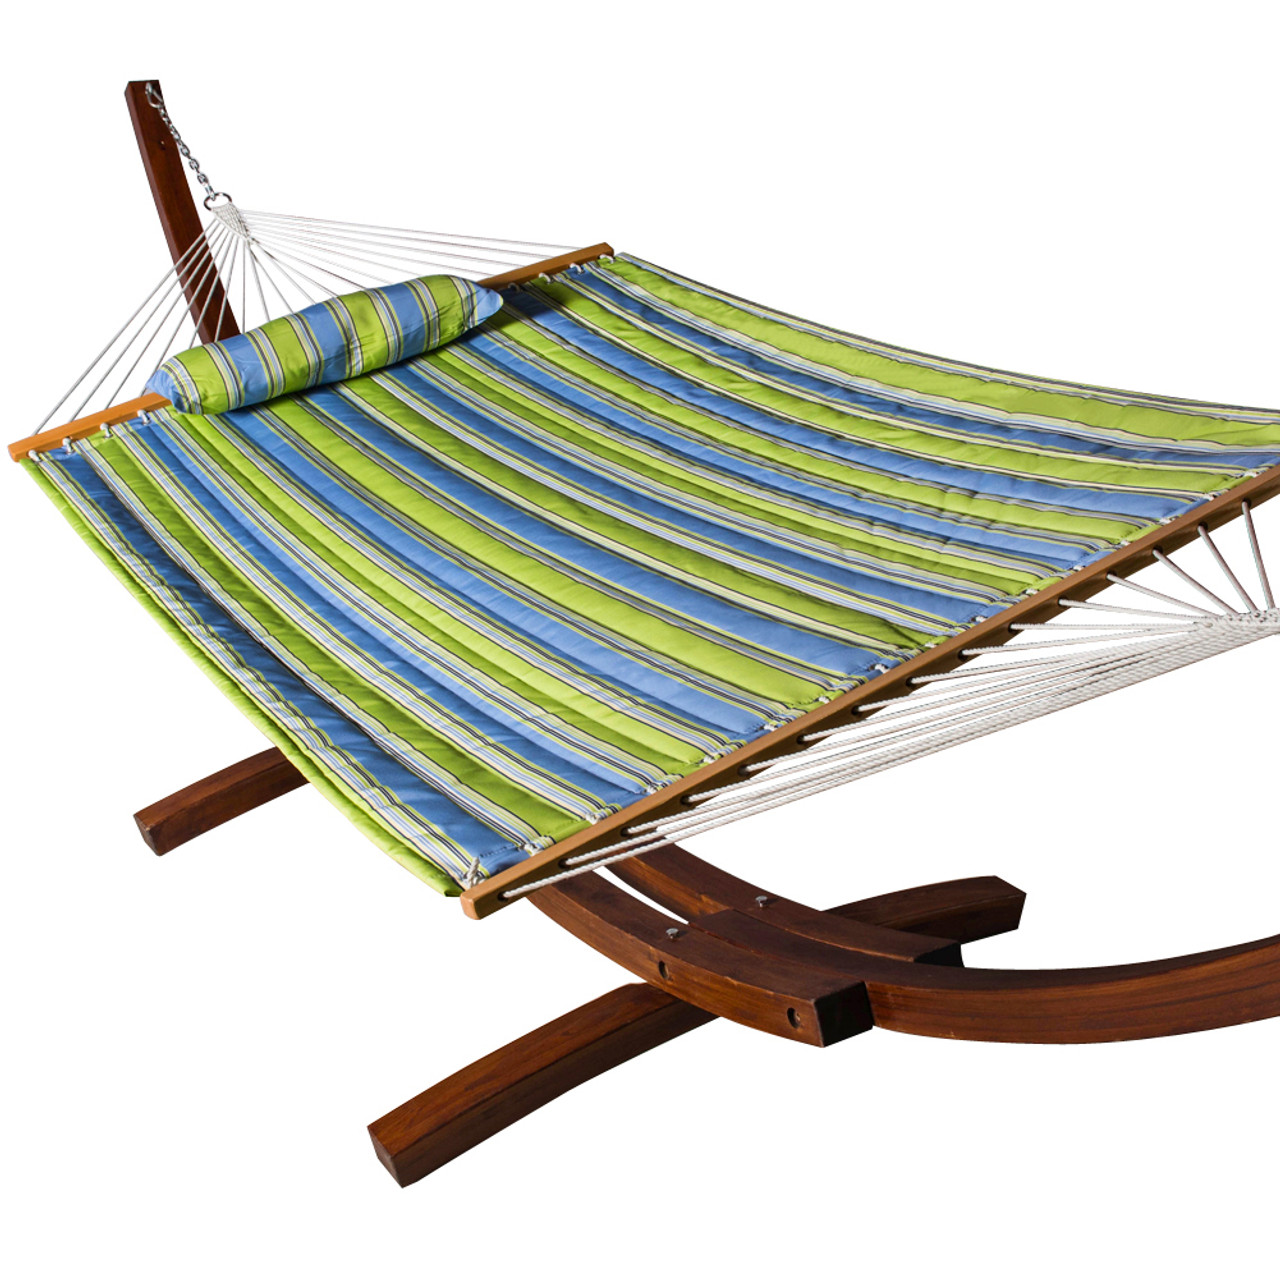 lazy daze hammocks all weather olefin fabric quilted hammock with spread bar for two person lazydaze hammocks all weather olefin fabric quilted hammock with      rh   sundaleoutdoor